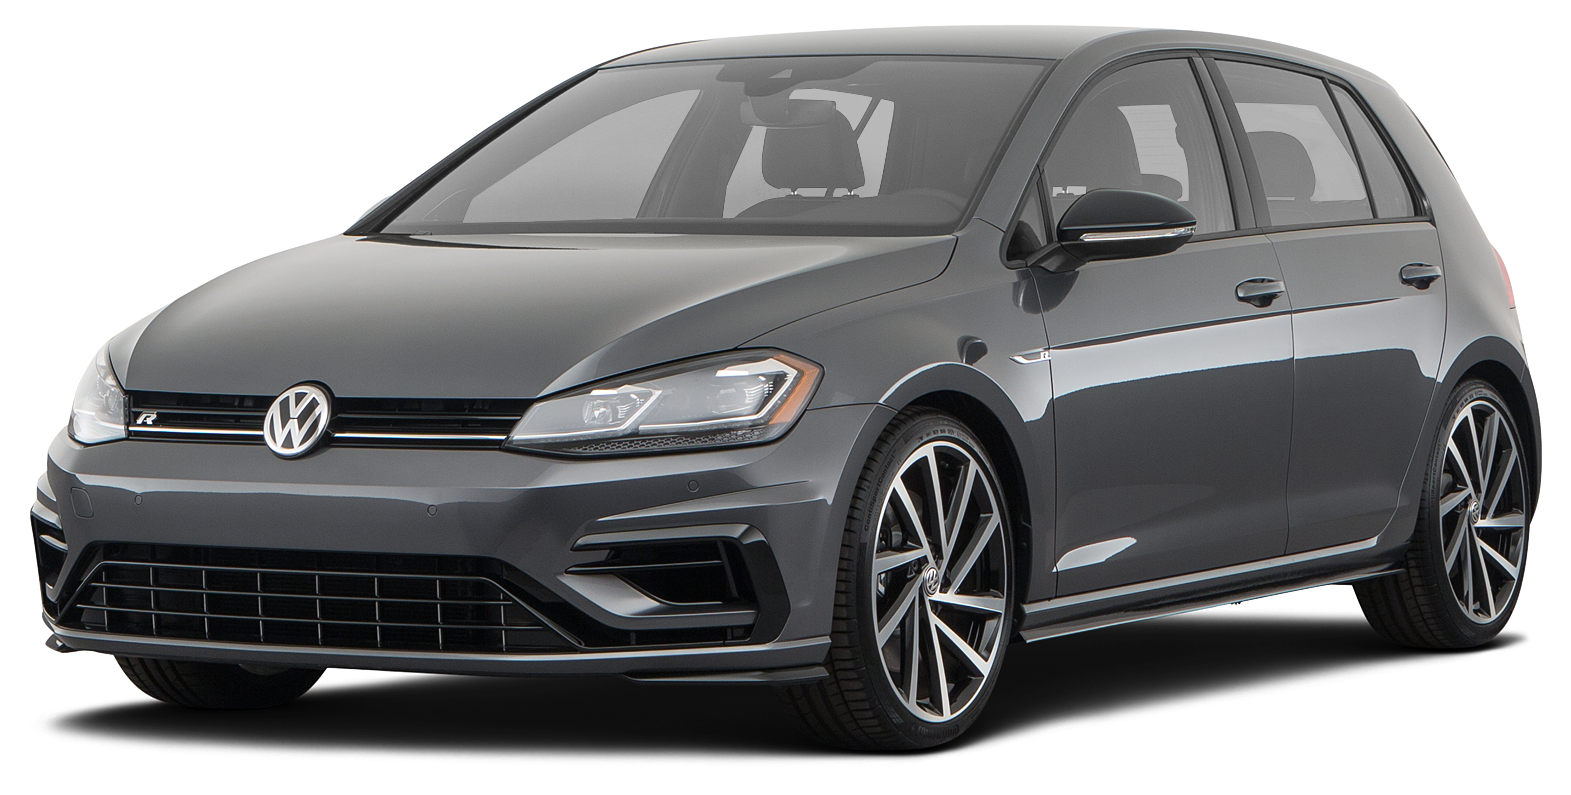 2019 Volkswagen Golf R Incentives, Specials & Offers in ...